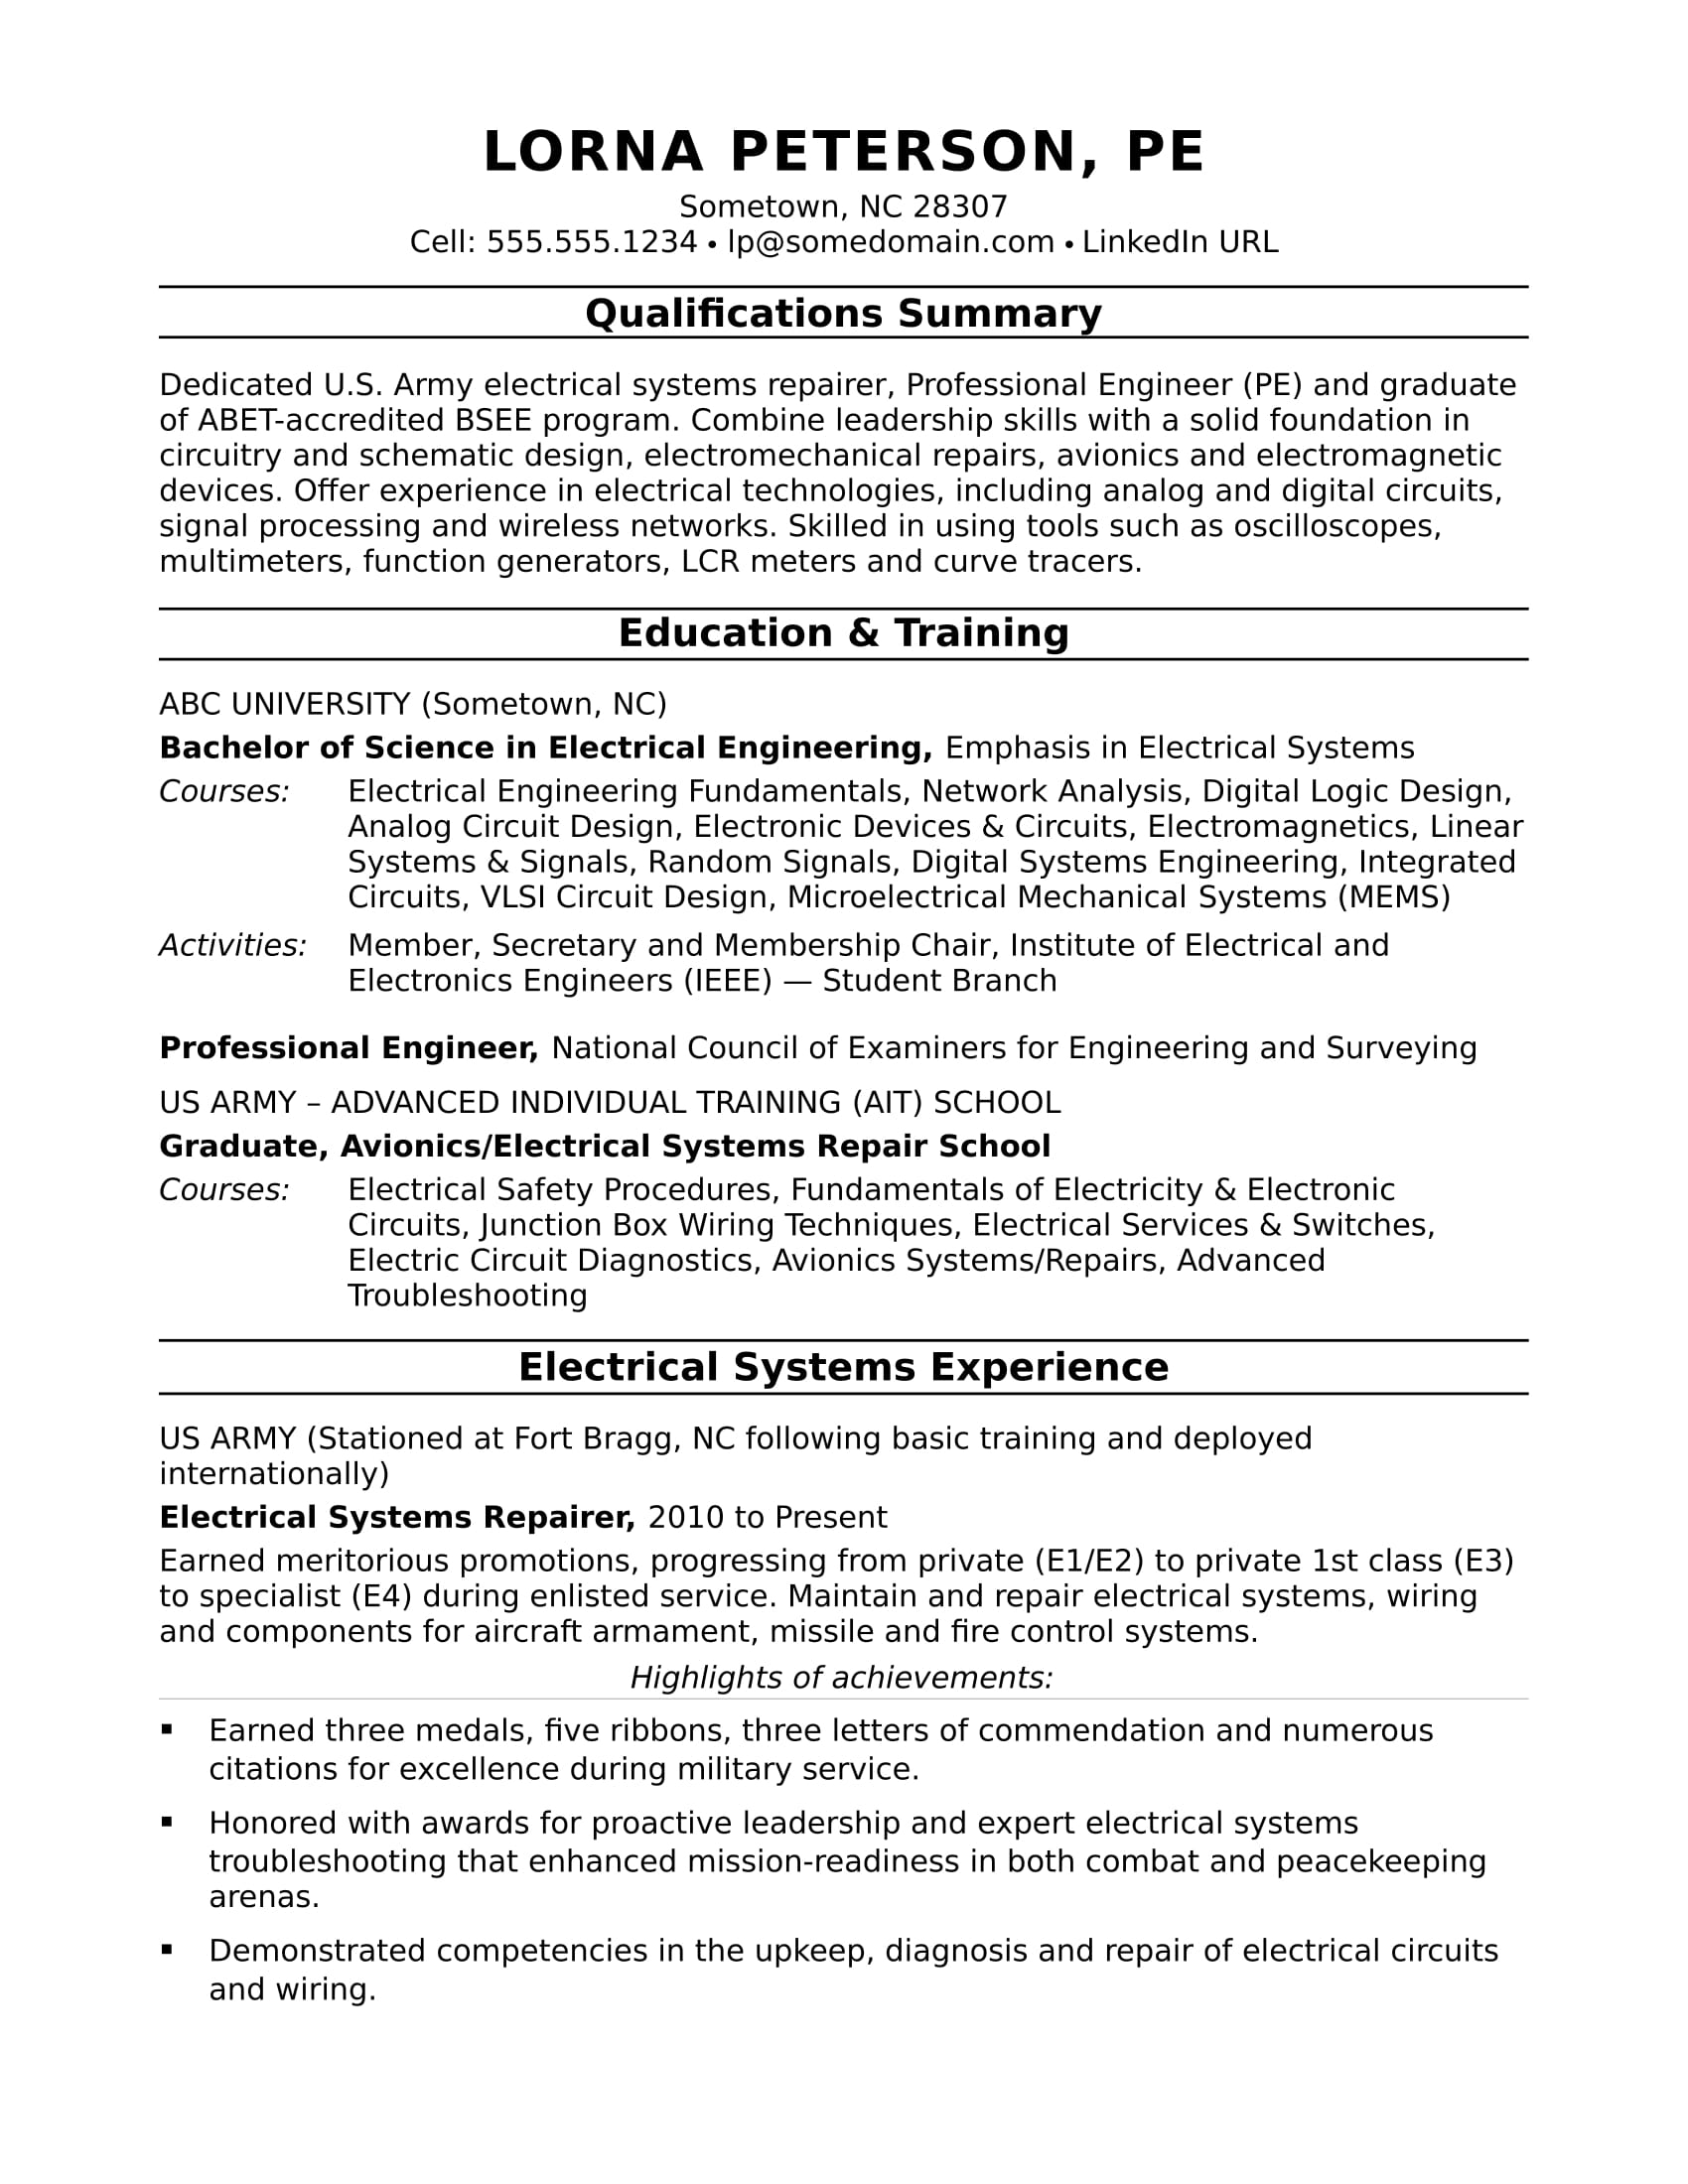 sample resume for midlevel electrical engineer monster signal processing accounts payable Resume Signal Processing Engineer Resume